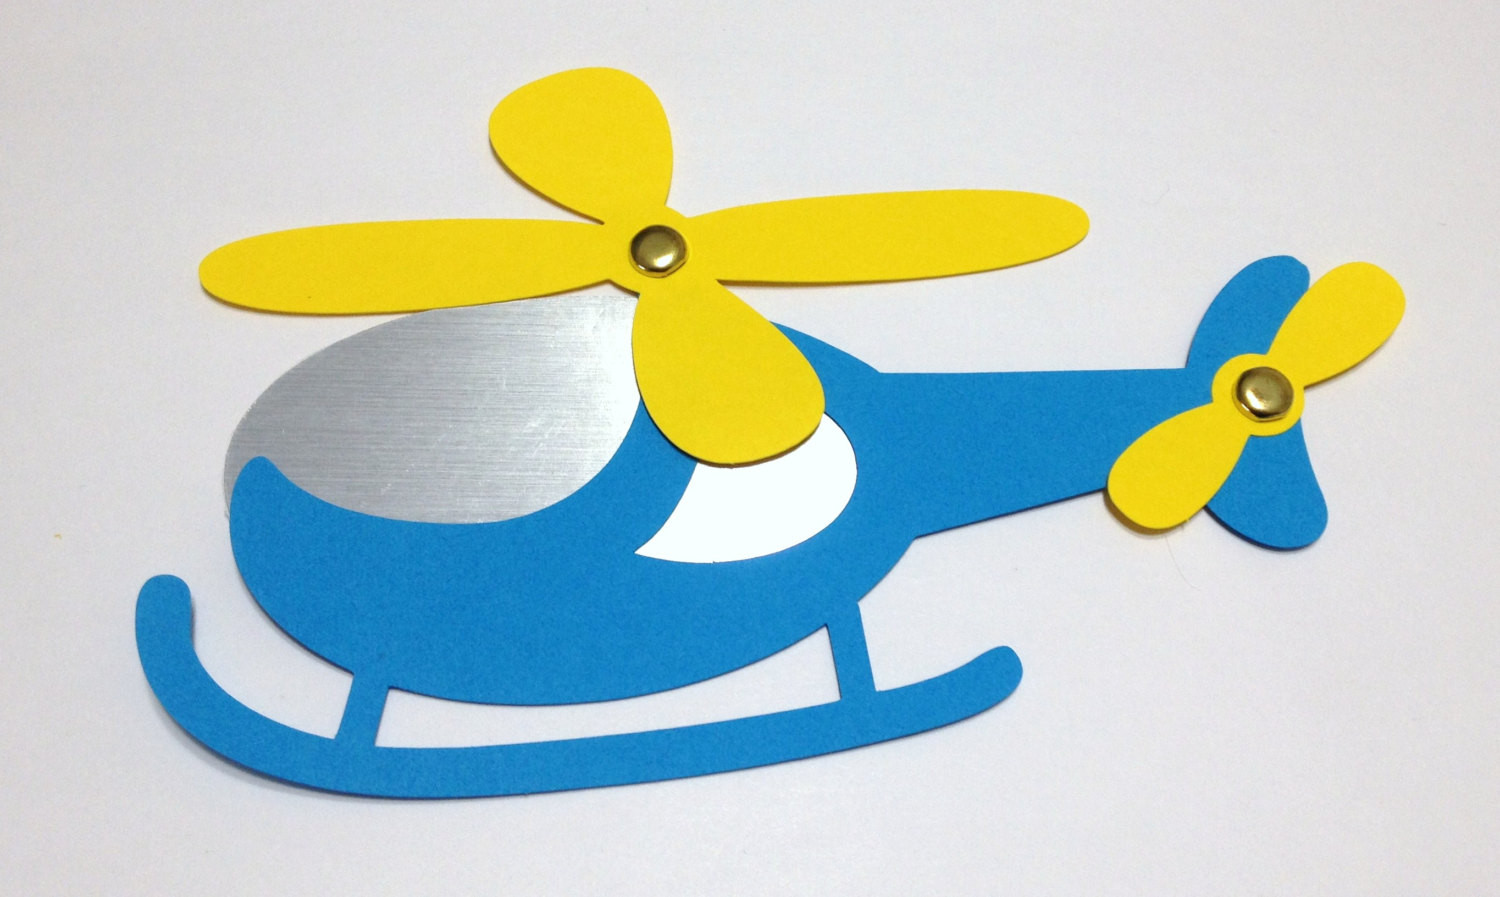 Best ideas about Arts And Crafts For Preschoolers . Save or Pin Arts Crafts Preschool Helicopter DMA Homes Now.